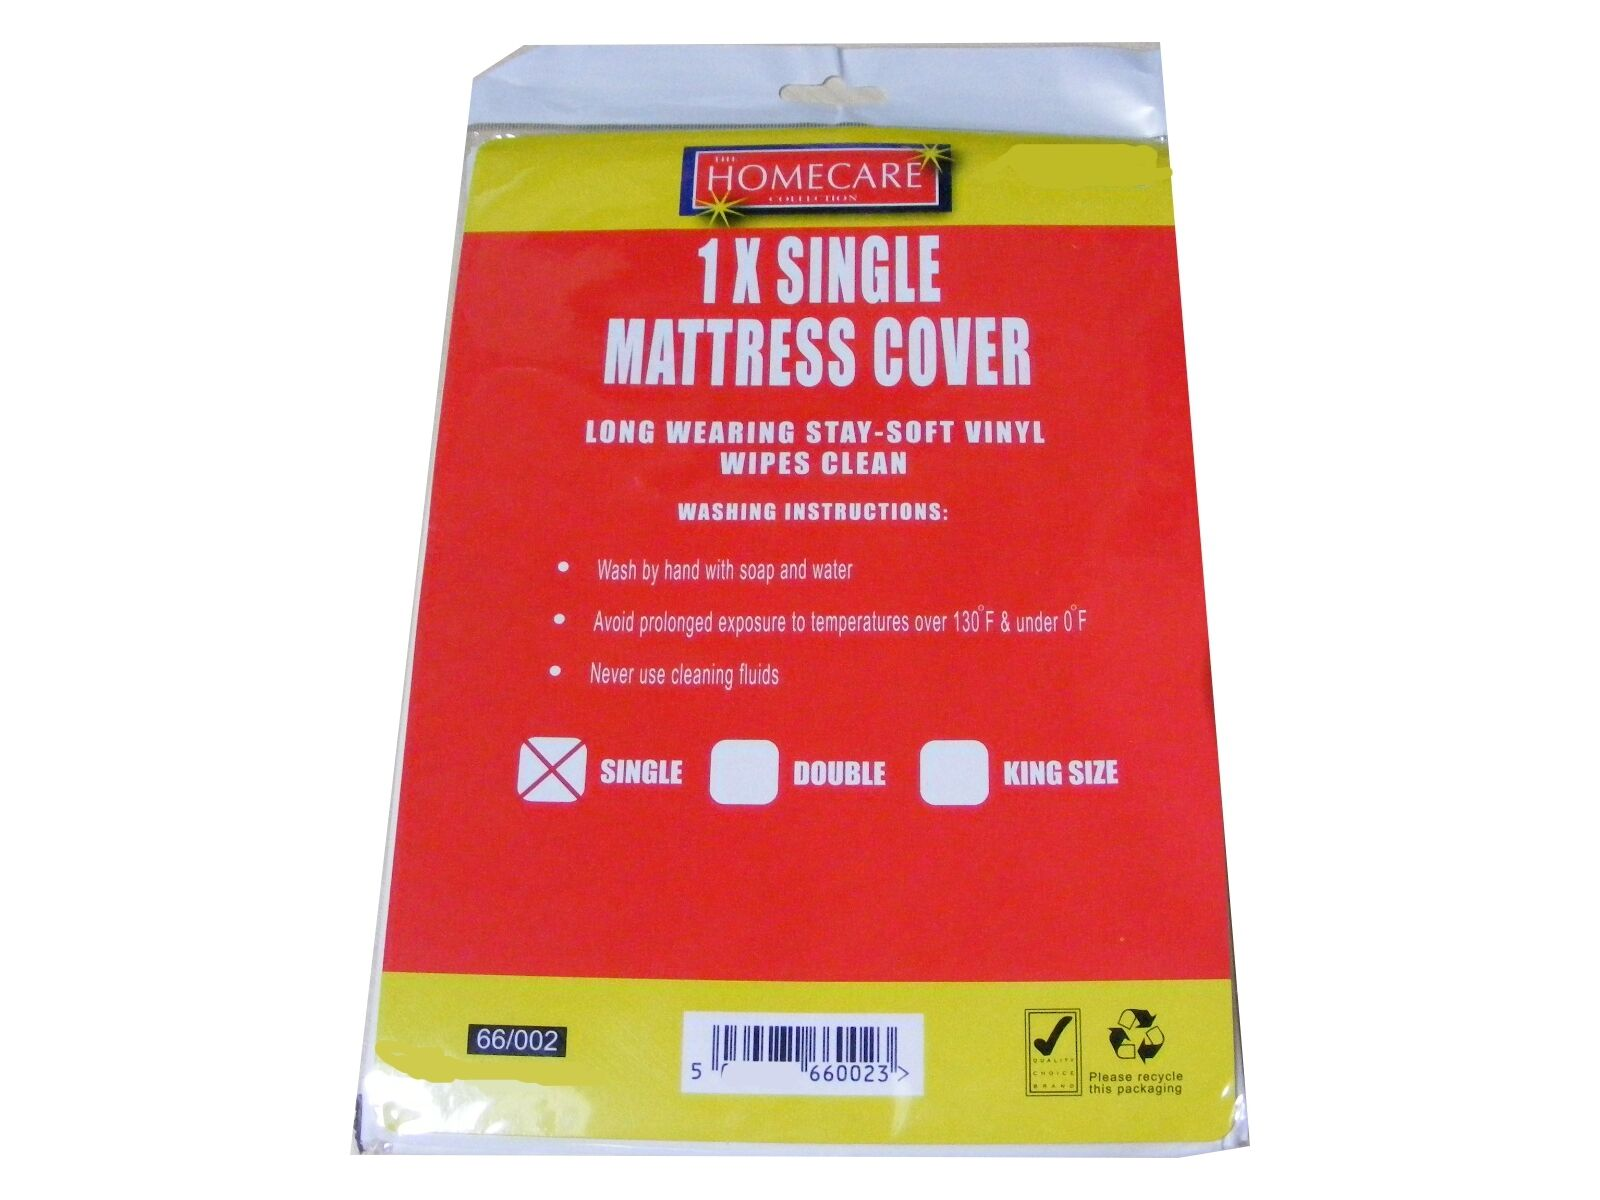 24 x SINGLE BED WETTING VINYL PLASTIC FITTED MATTRESS COVER SHEET PROTECTOR